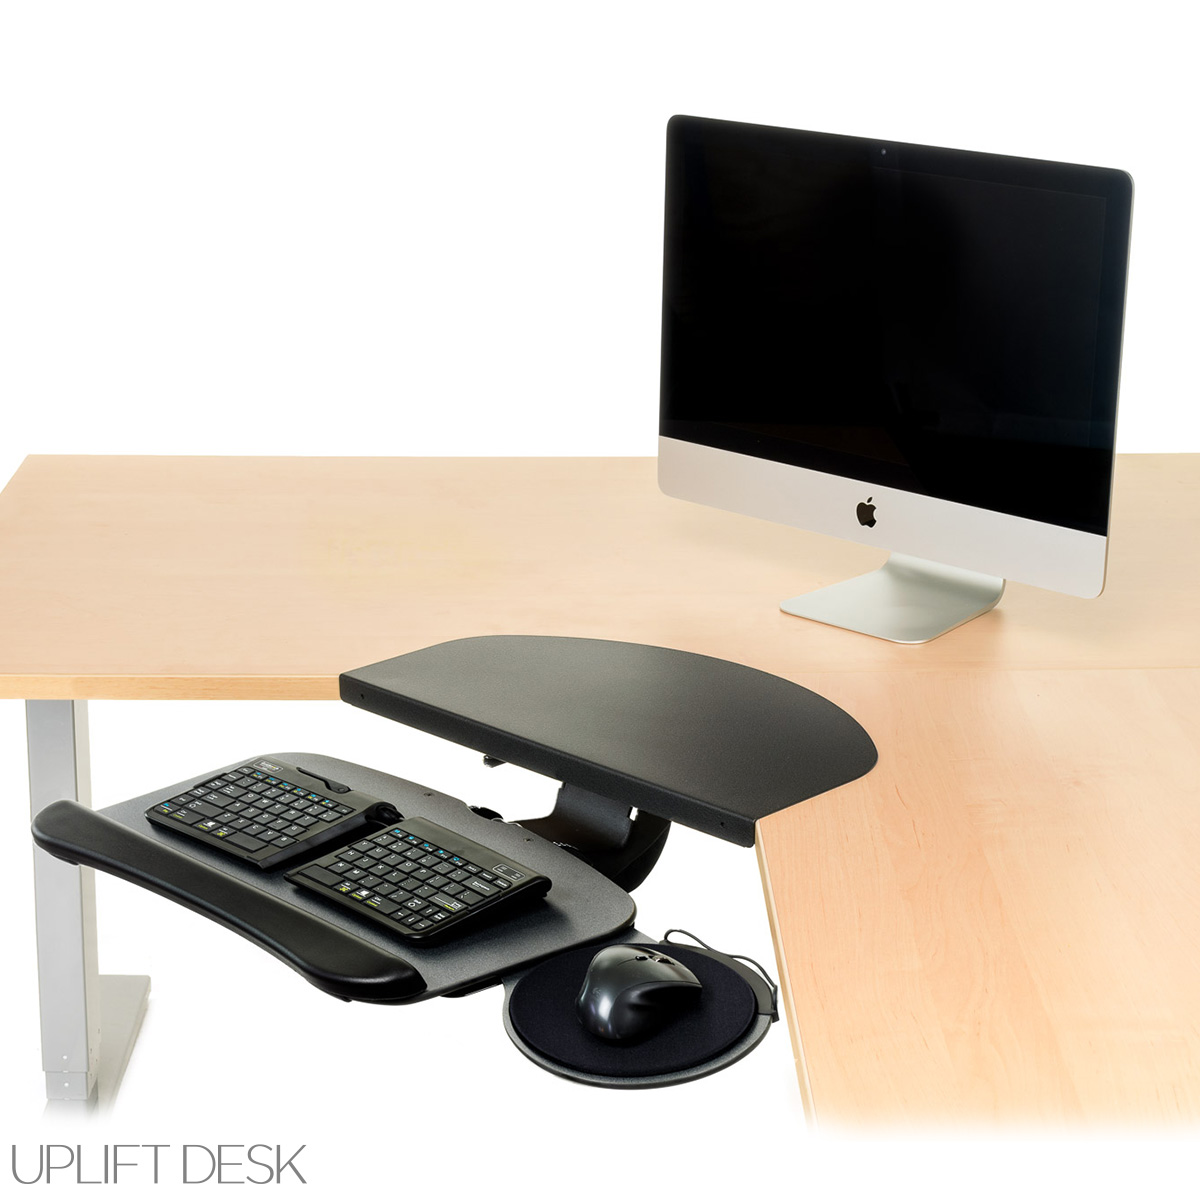 Desk Accessories UPLIFT Keyboard Tray Kit for Corner L-Shaped Desk